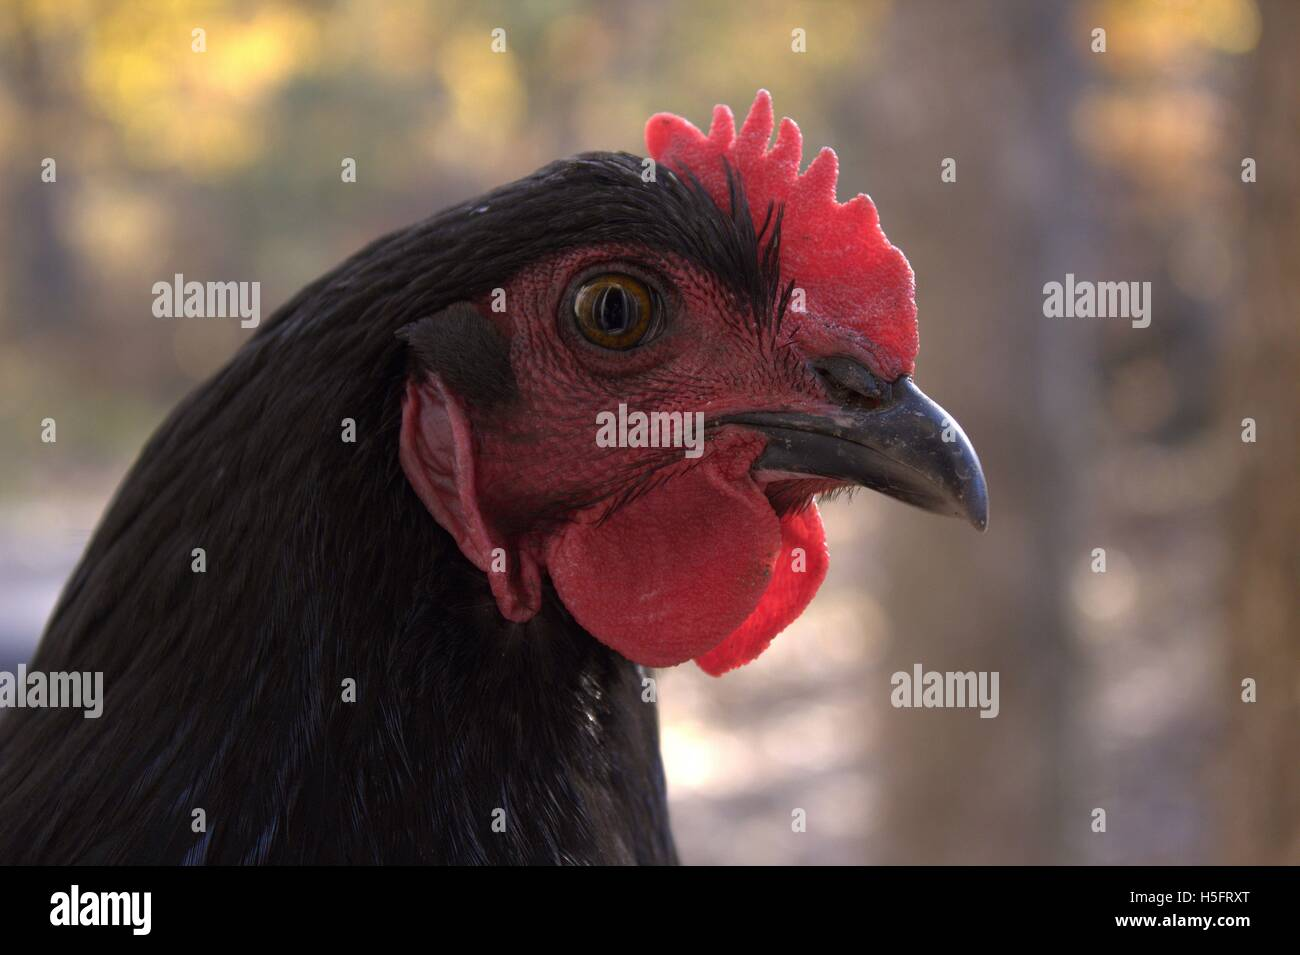 Black Jersey Giant Hen, Close Up - Stock Image